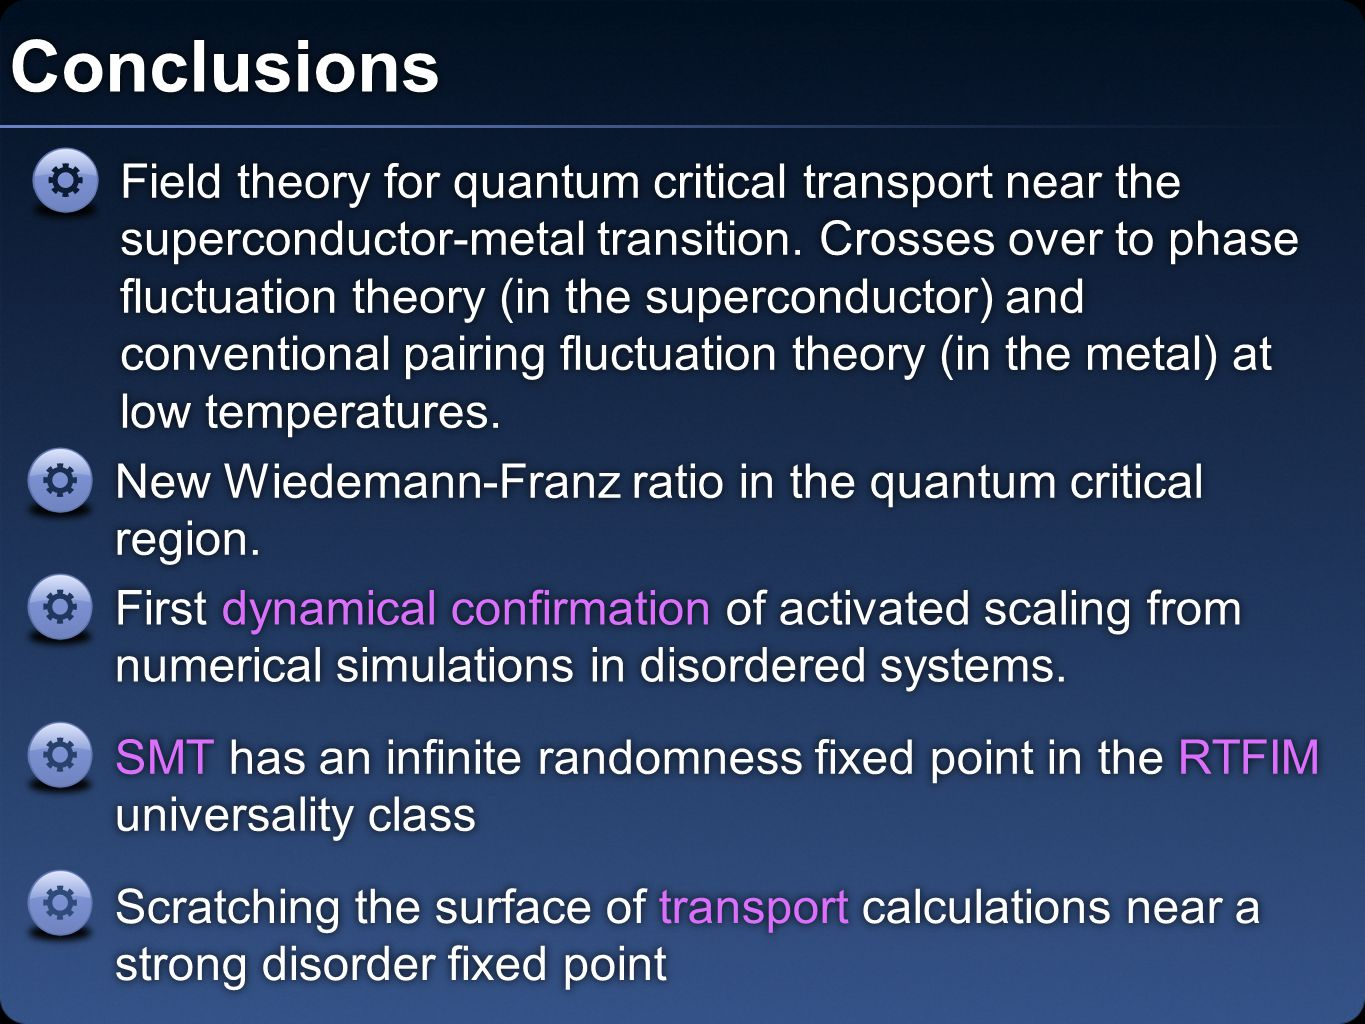 Conclusions SMT has an infinite randomness fixed point in the RTFIM universality class First dynamical confirmation of activated scaling from numerical simulations in disordered systems.